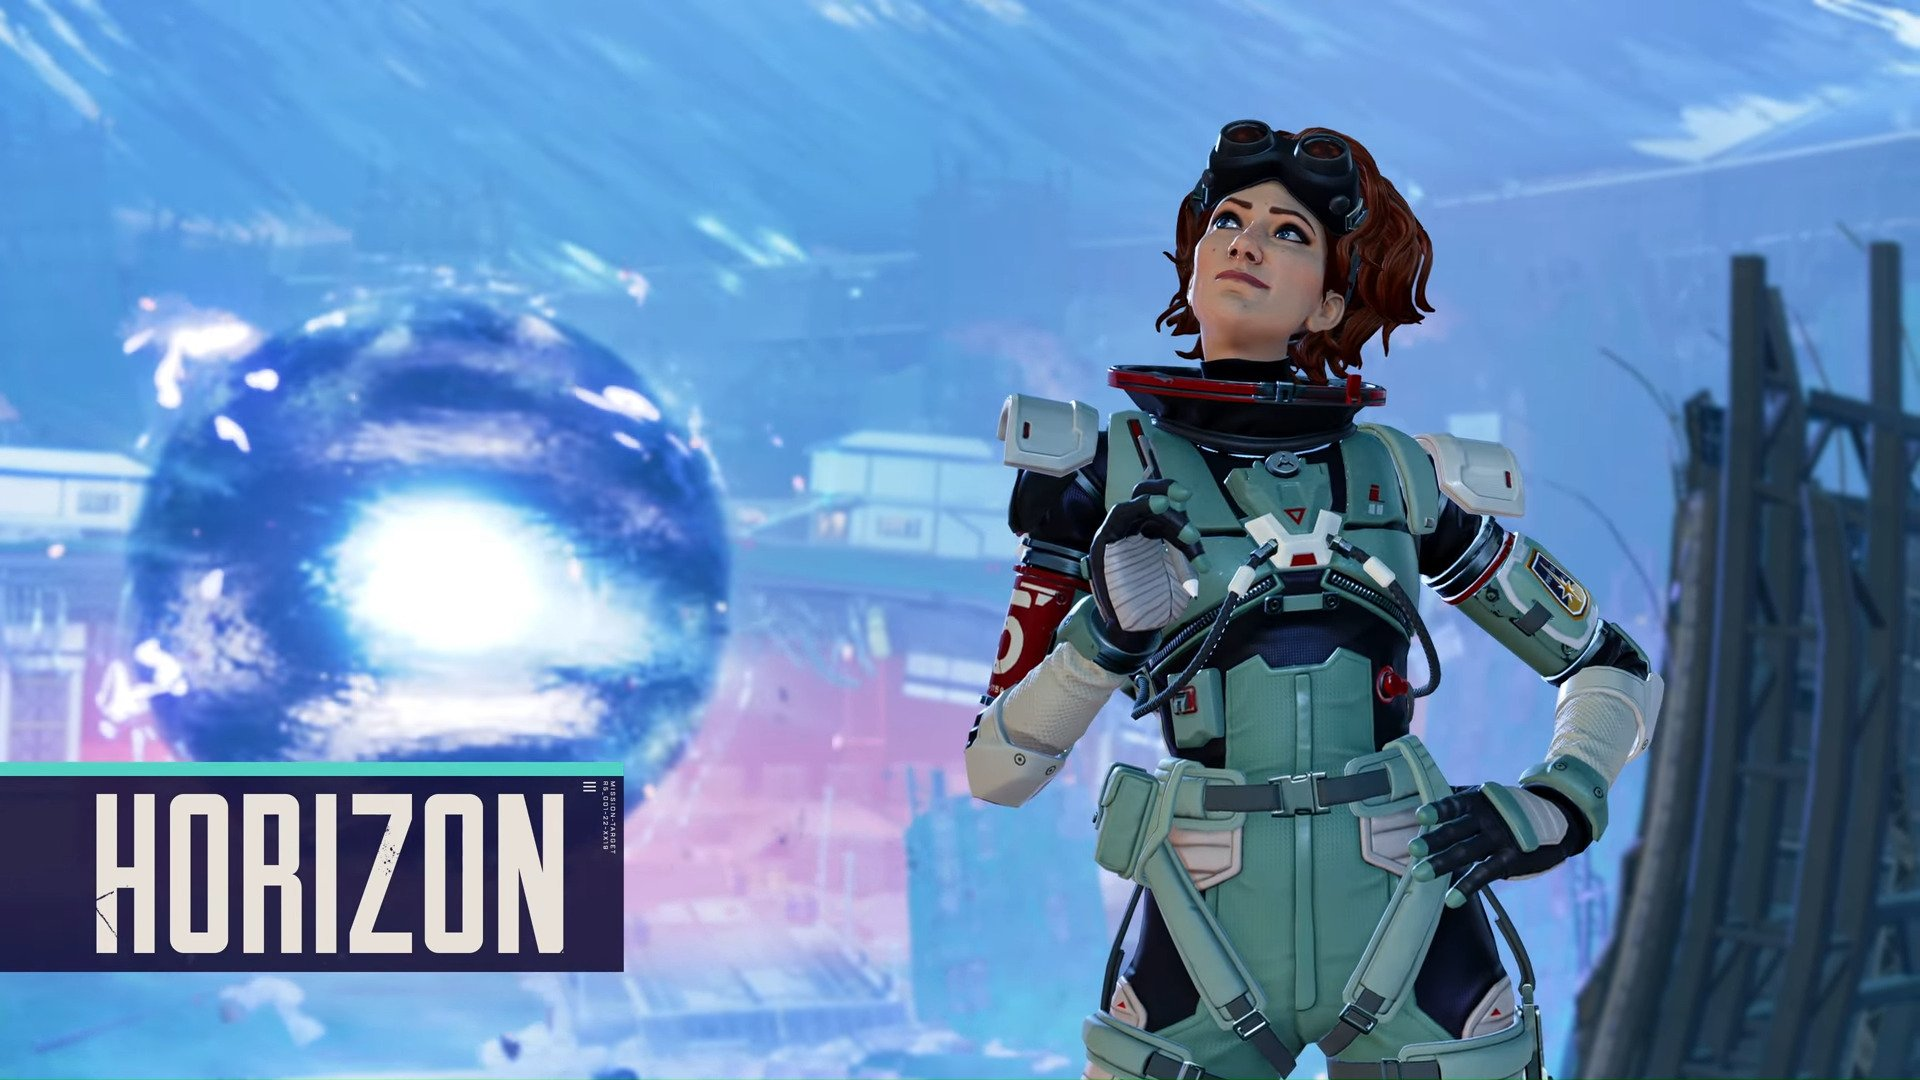 Apex Legend's New Legend Horizon Has An Interesting Skillset, And A Potentially OVERPOWERED Ultimate